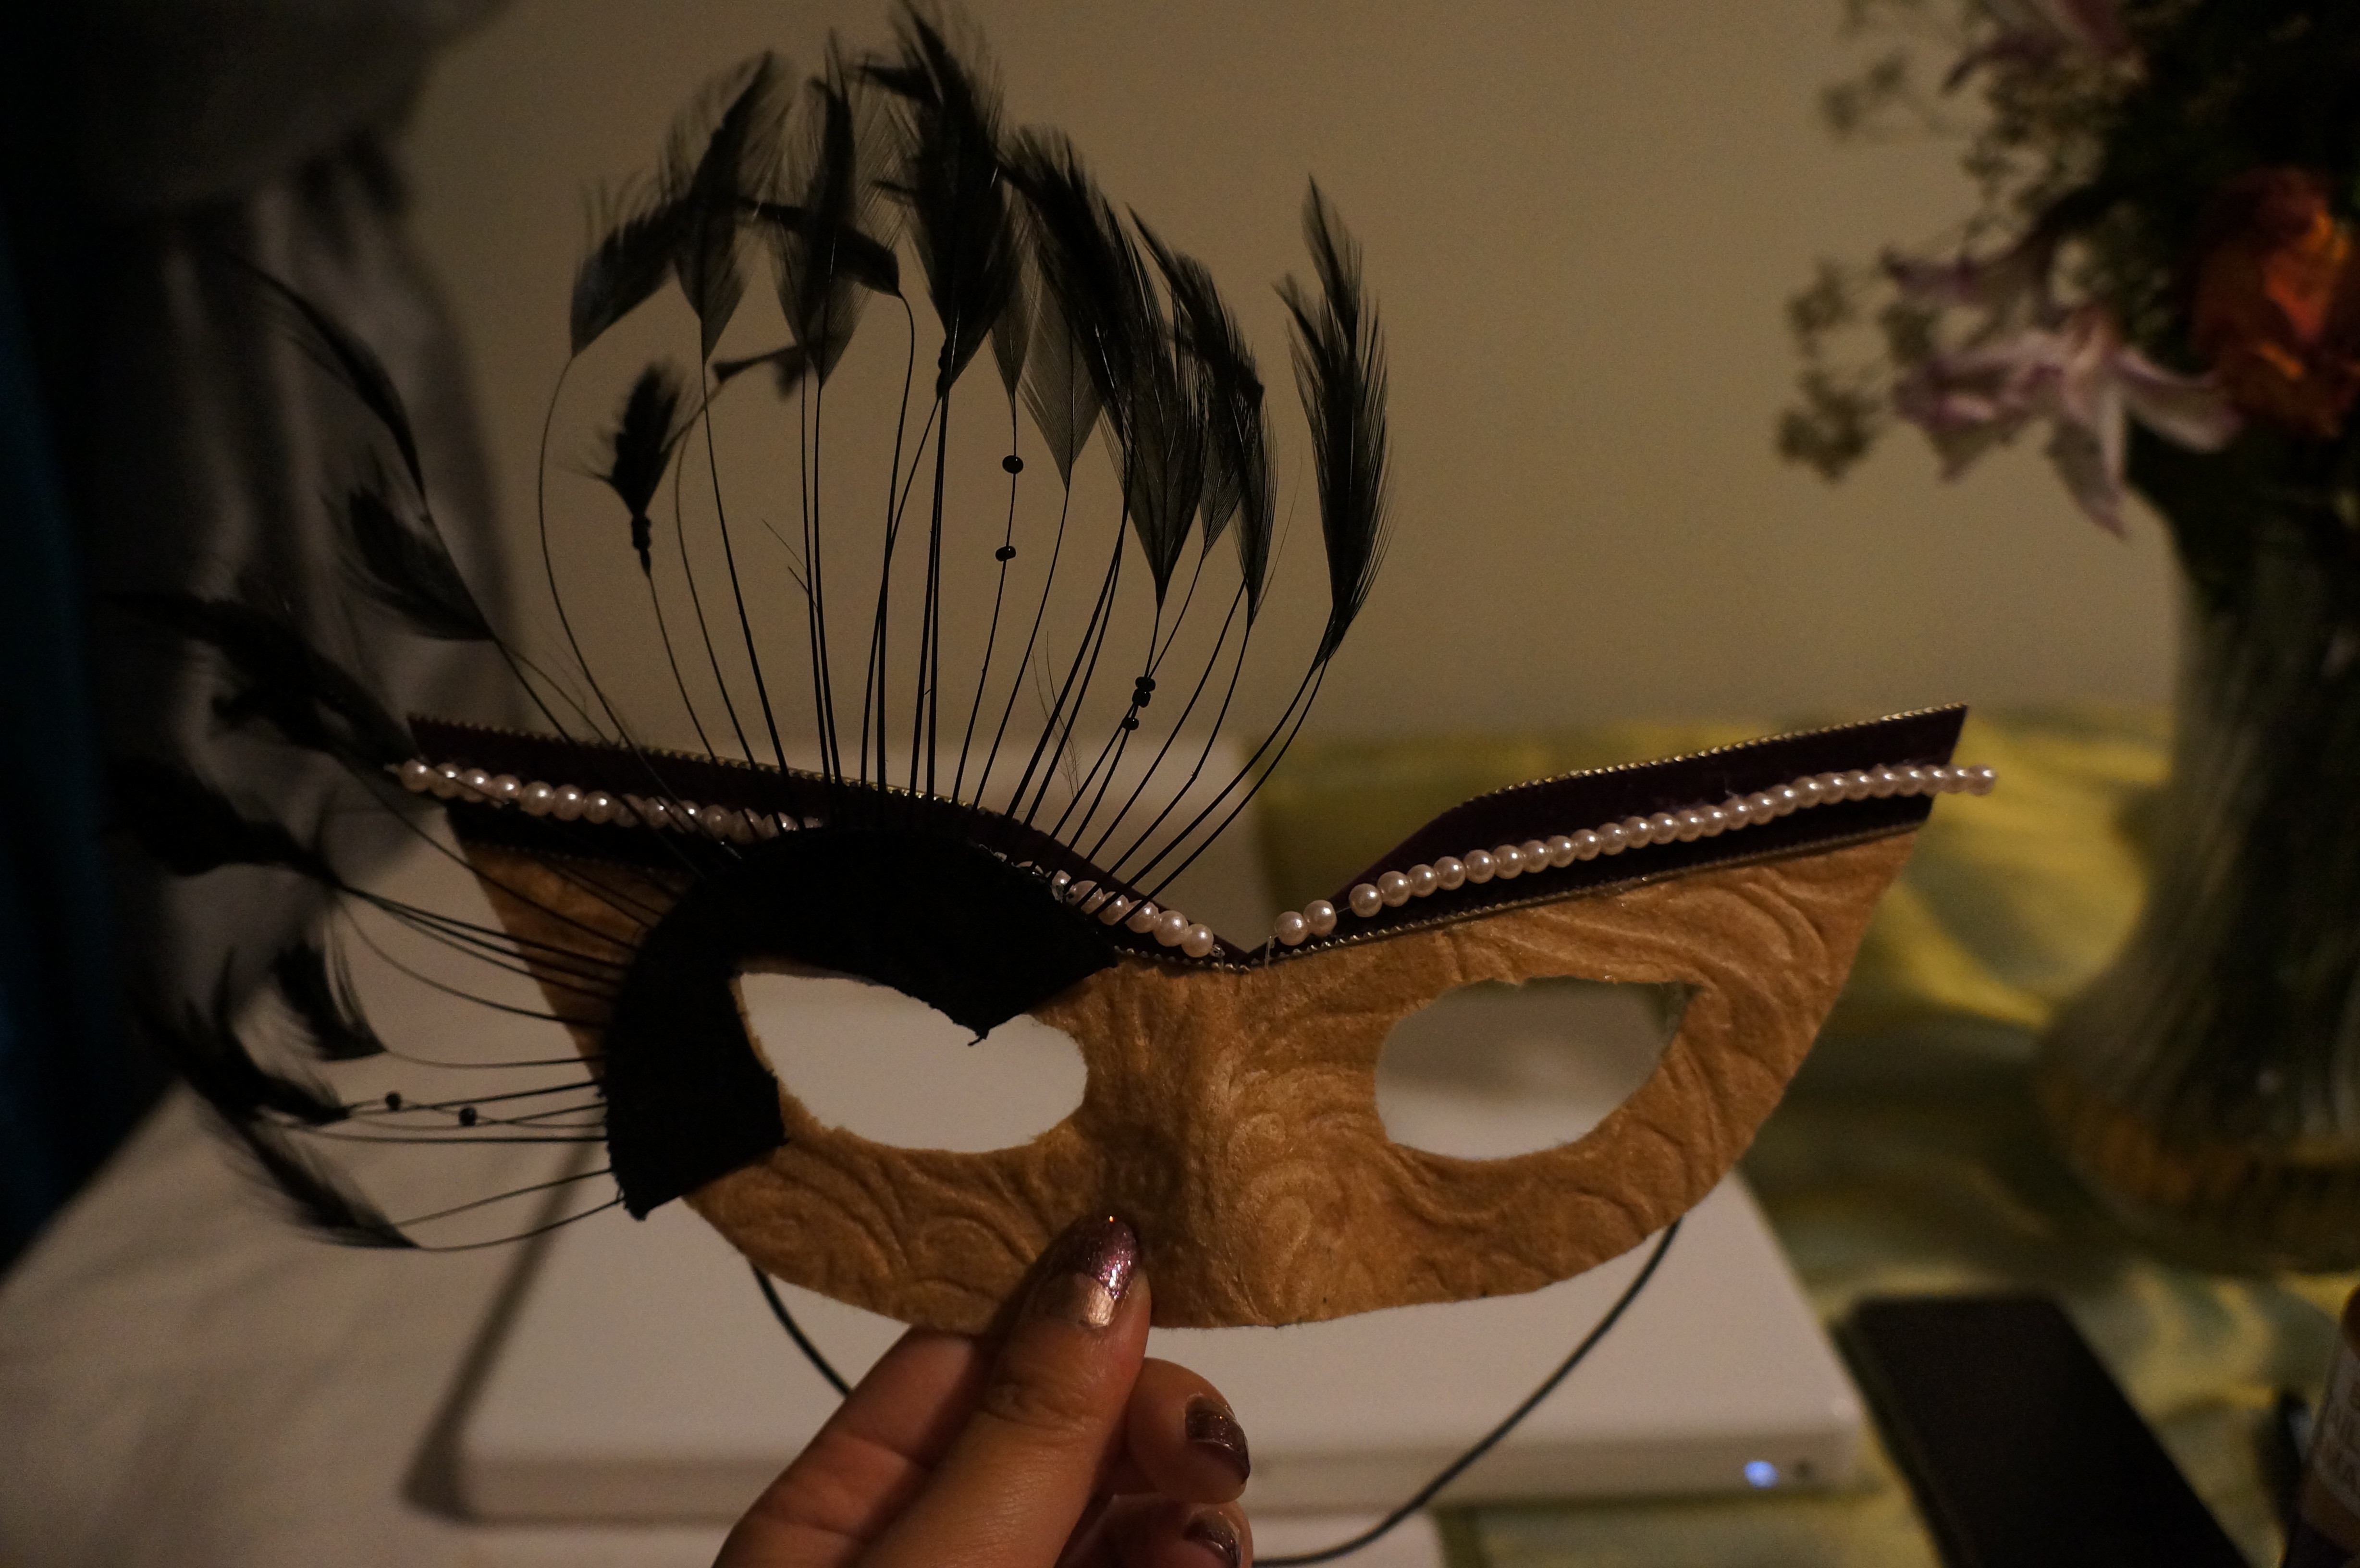 Best ideas about Masquerade Masks DIY . Save or Pin DIY Masquerade Mask Now.